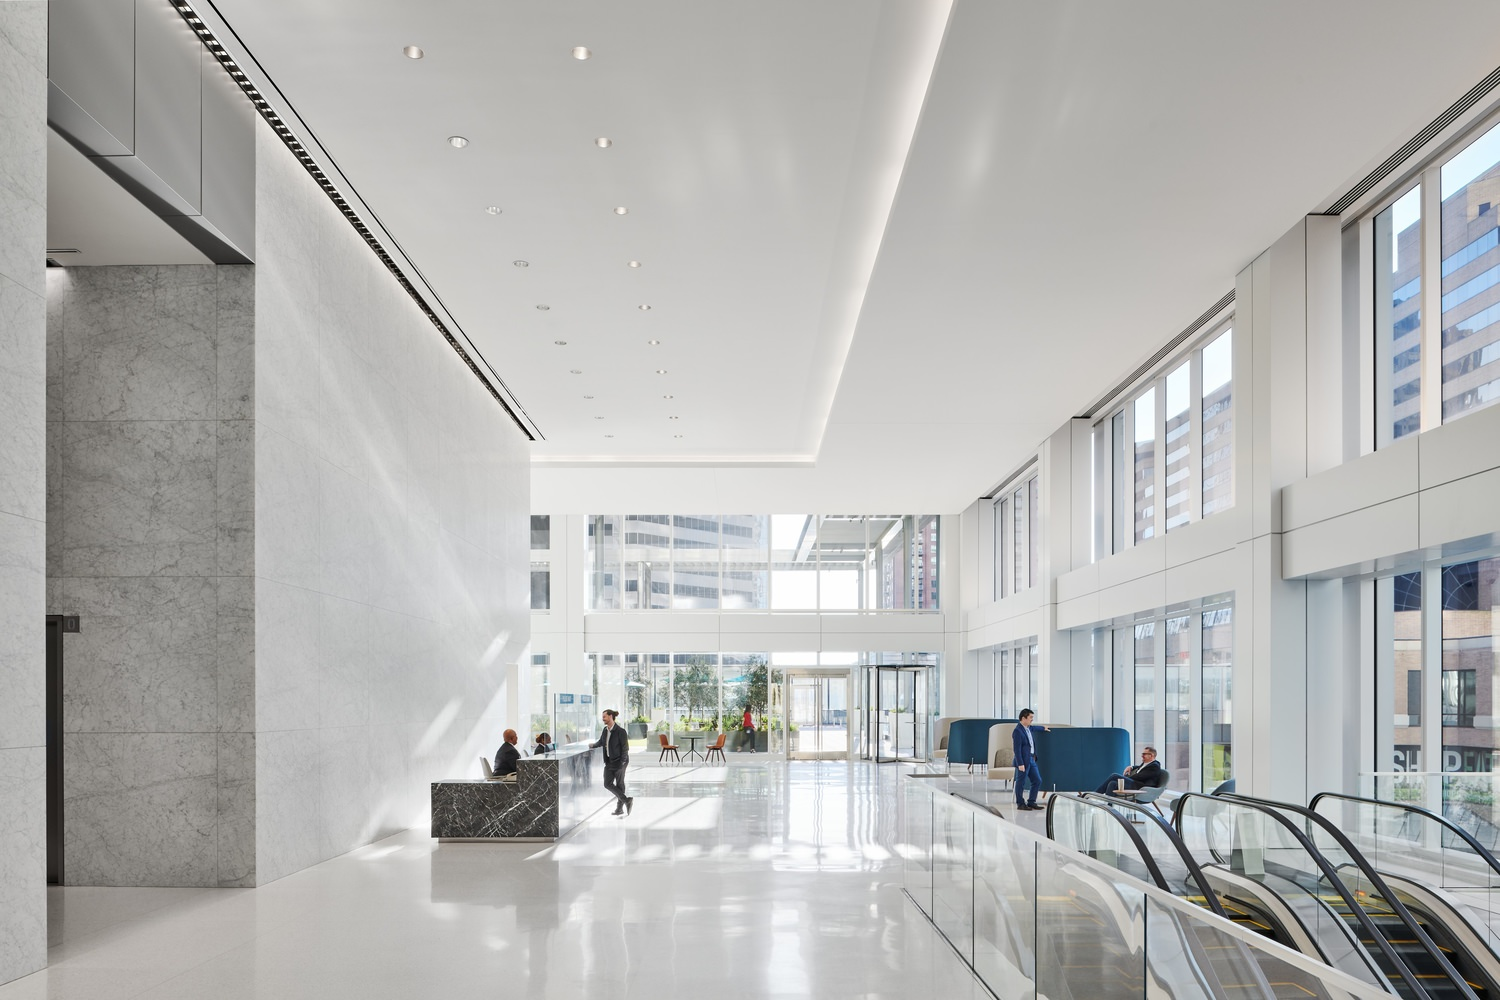 A man speaks to a receptionist in a bright lobby.